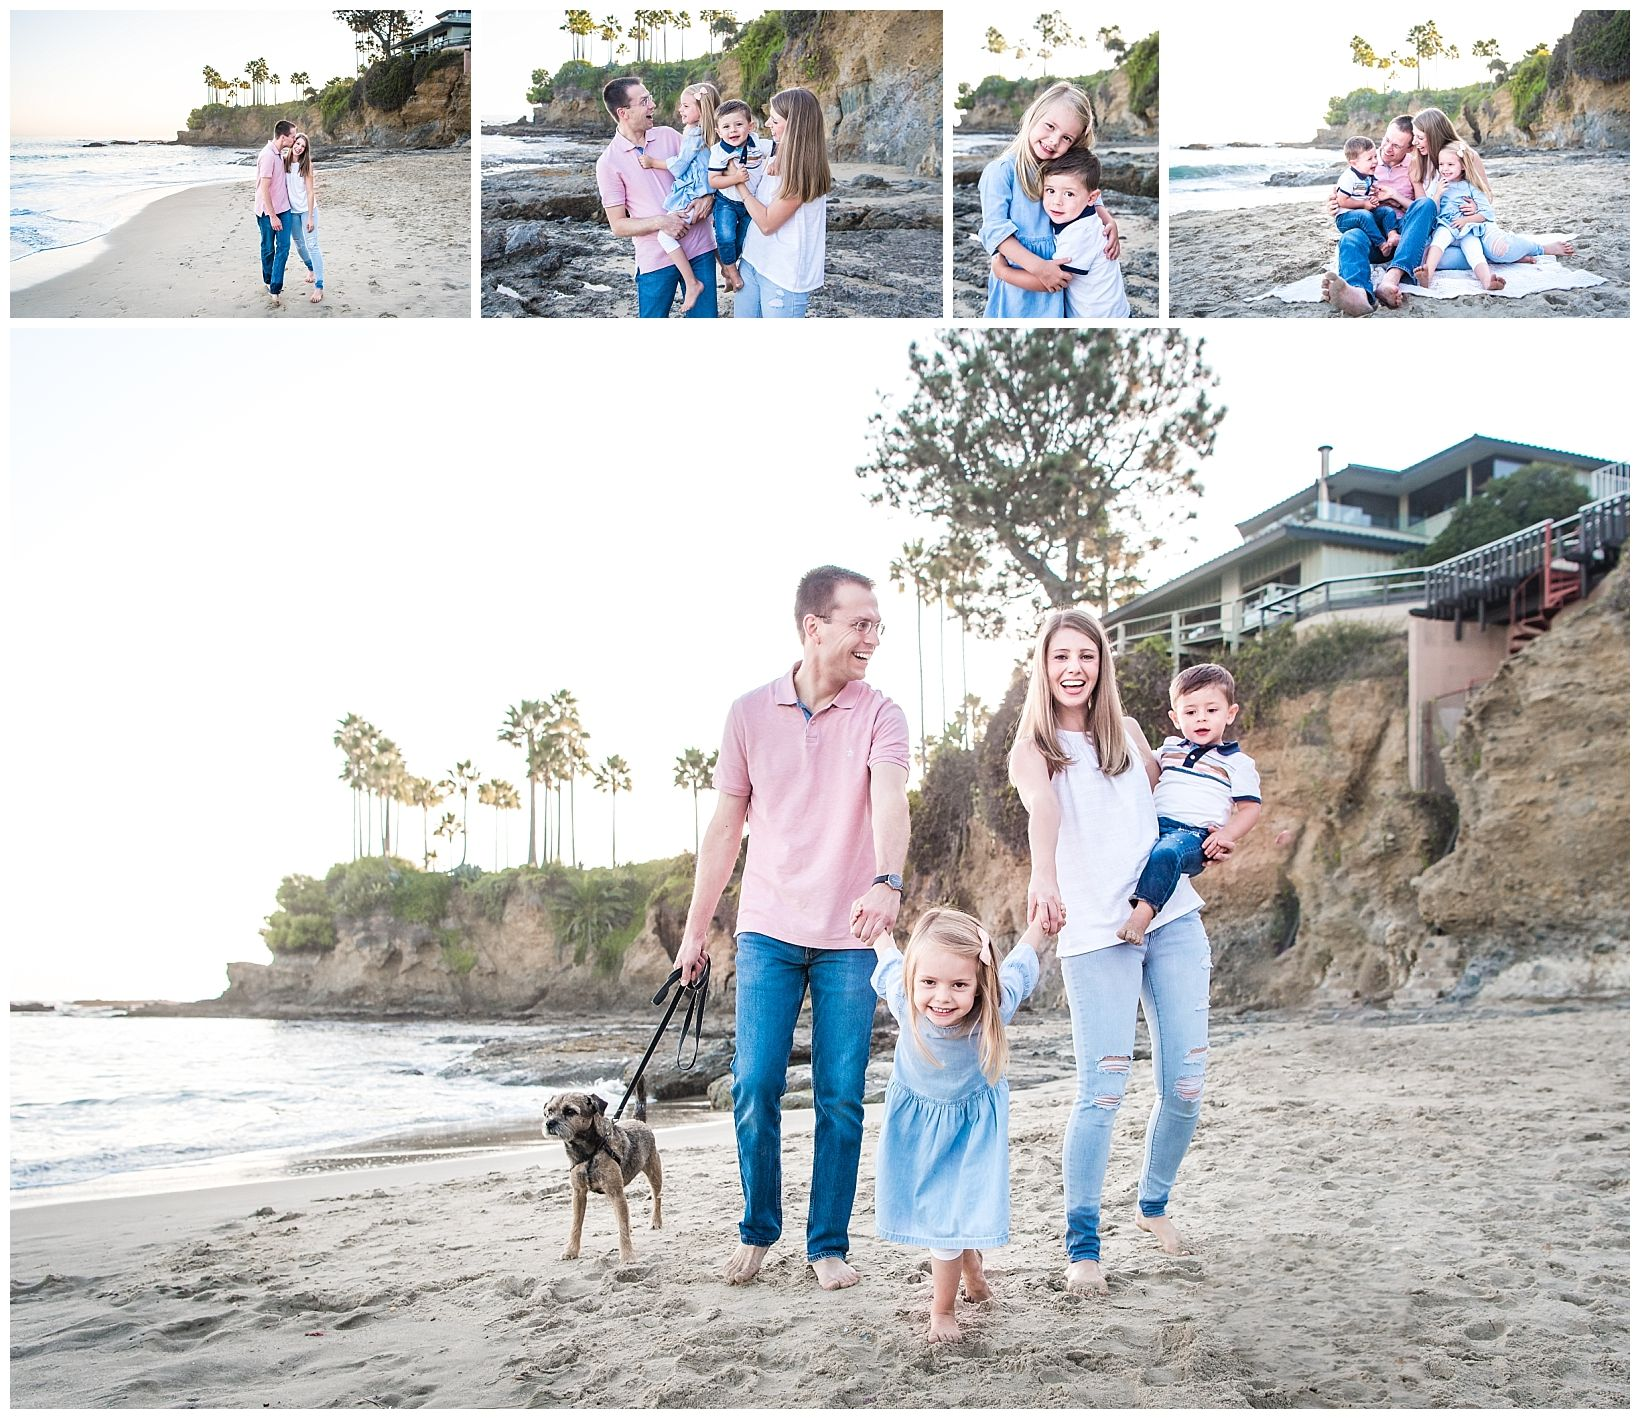 Family Photograph on the beach in Laguna Beach, CA